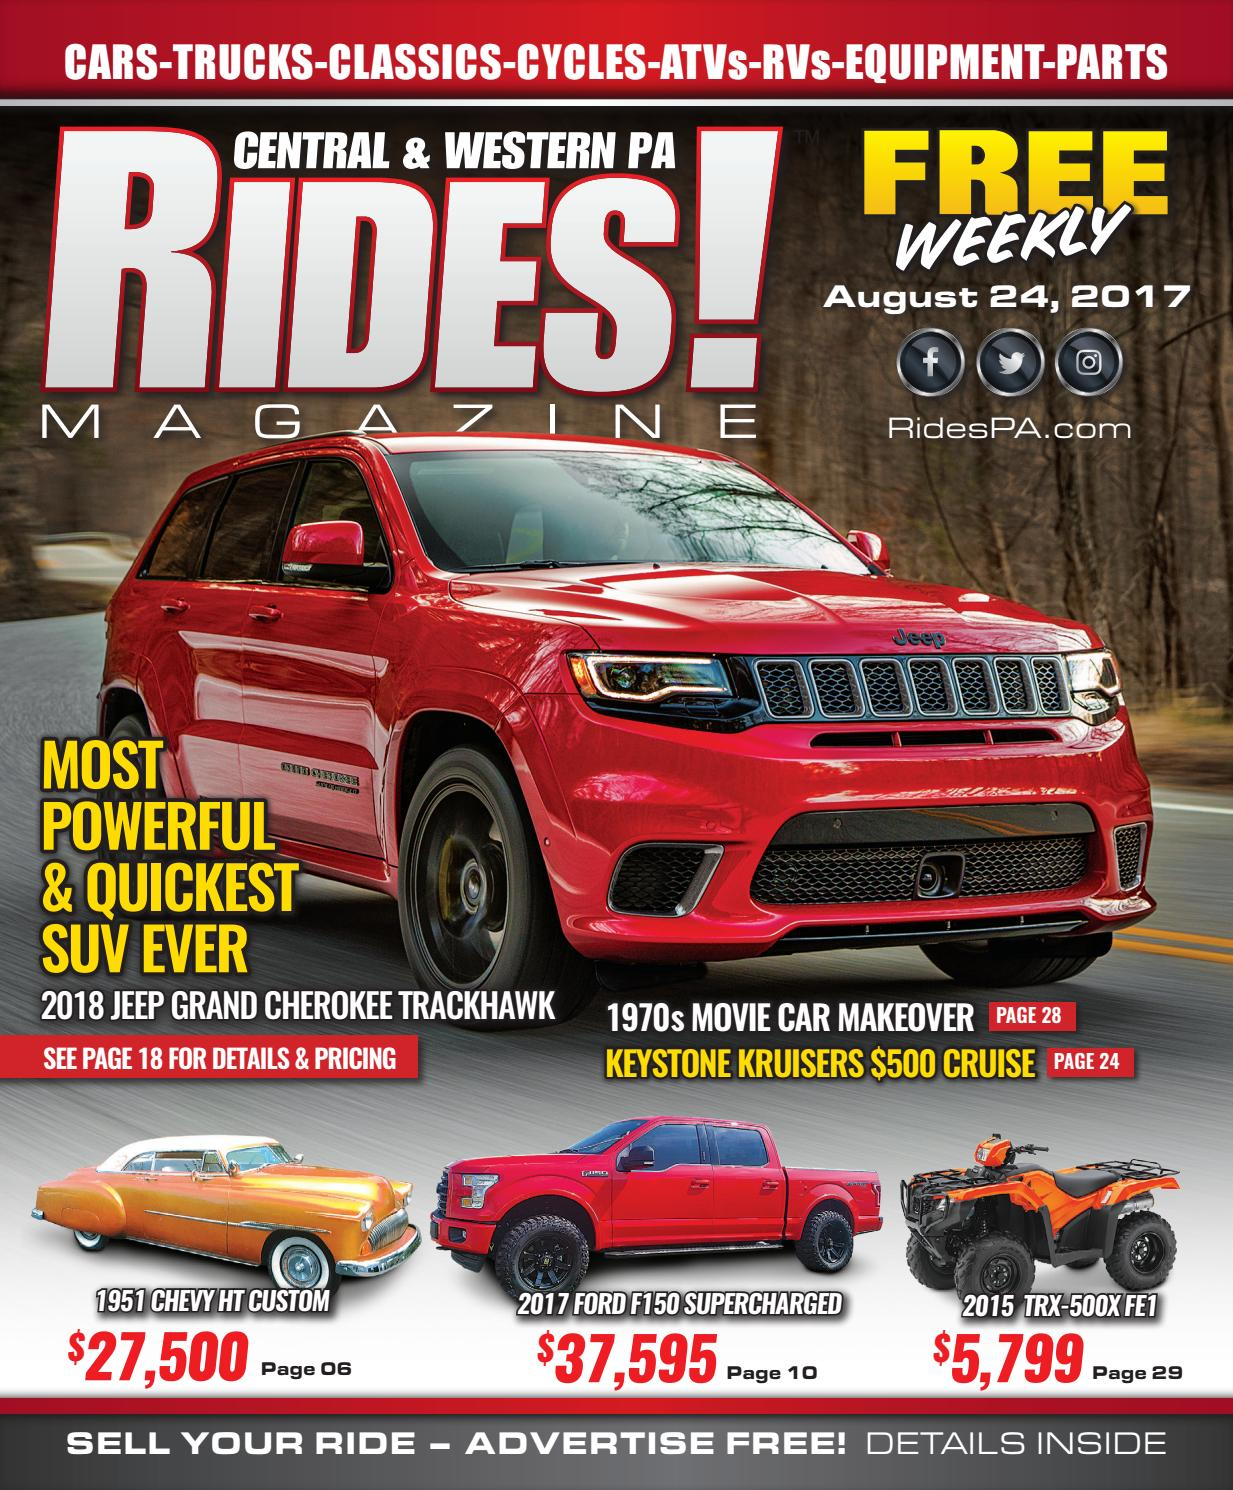 RIDES! Magazine of Central & Western PA by Stott Media - Issuu